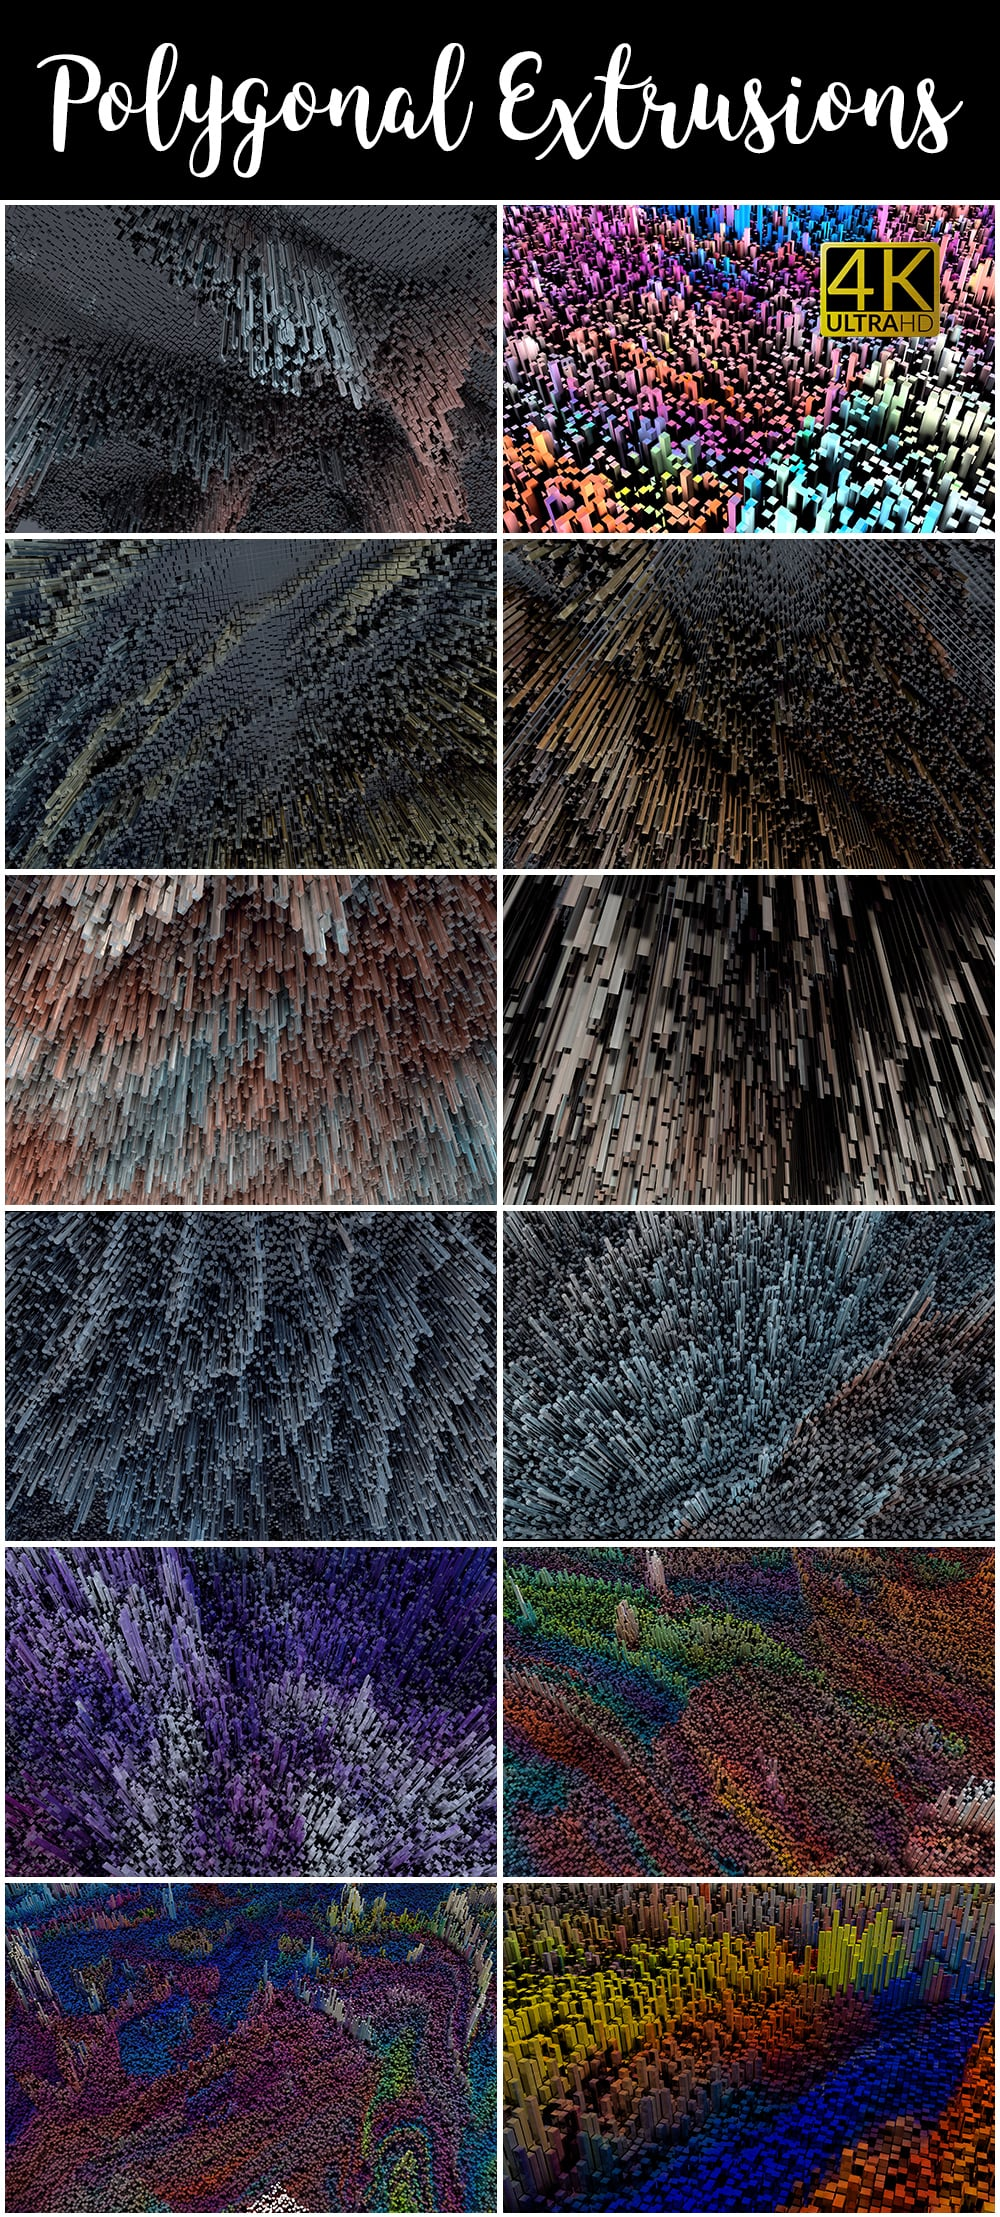 1100 Photoshop Overlays Mega Pack - Extended License - 38 Polygonal Extrusions